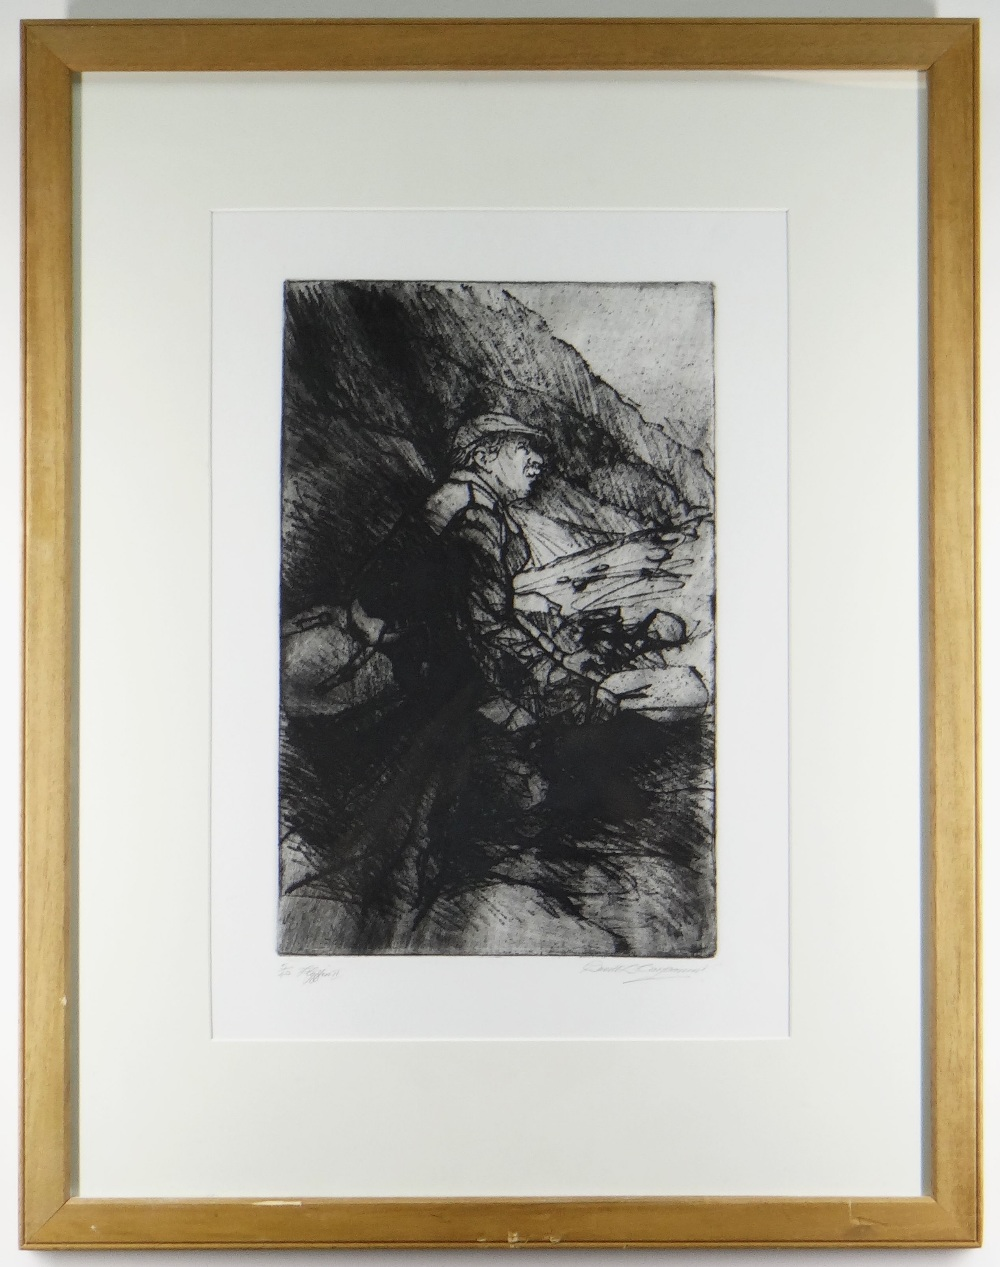 DAVID CARPANINI limited edition (5/40) etching - Kyffin II, signed, titled and numbered in